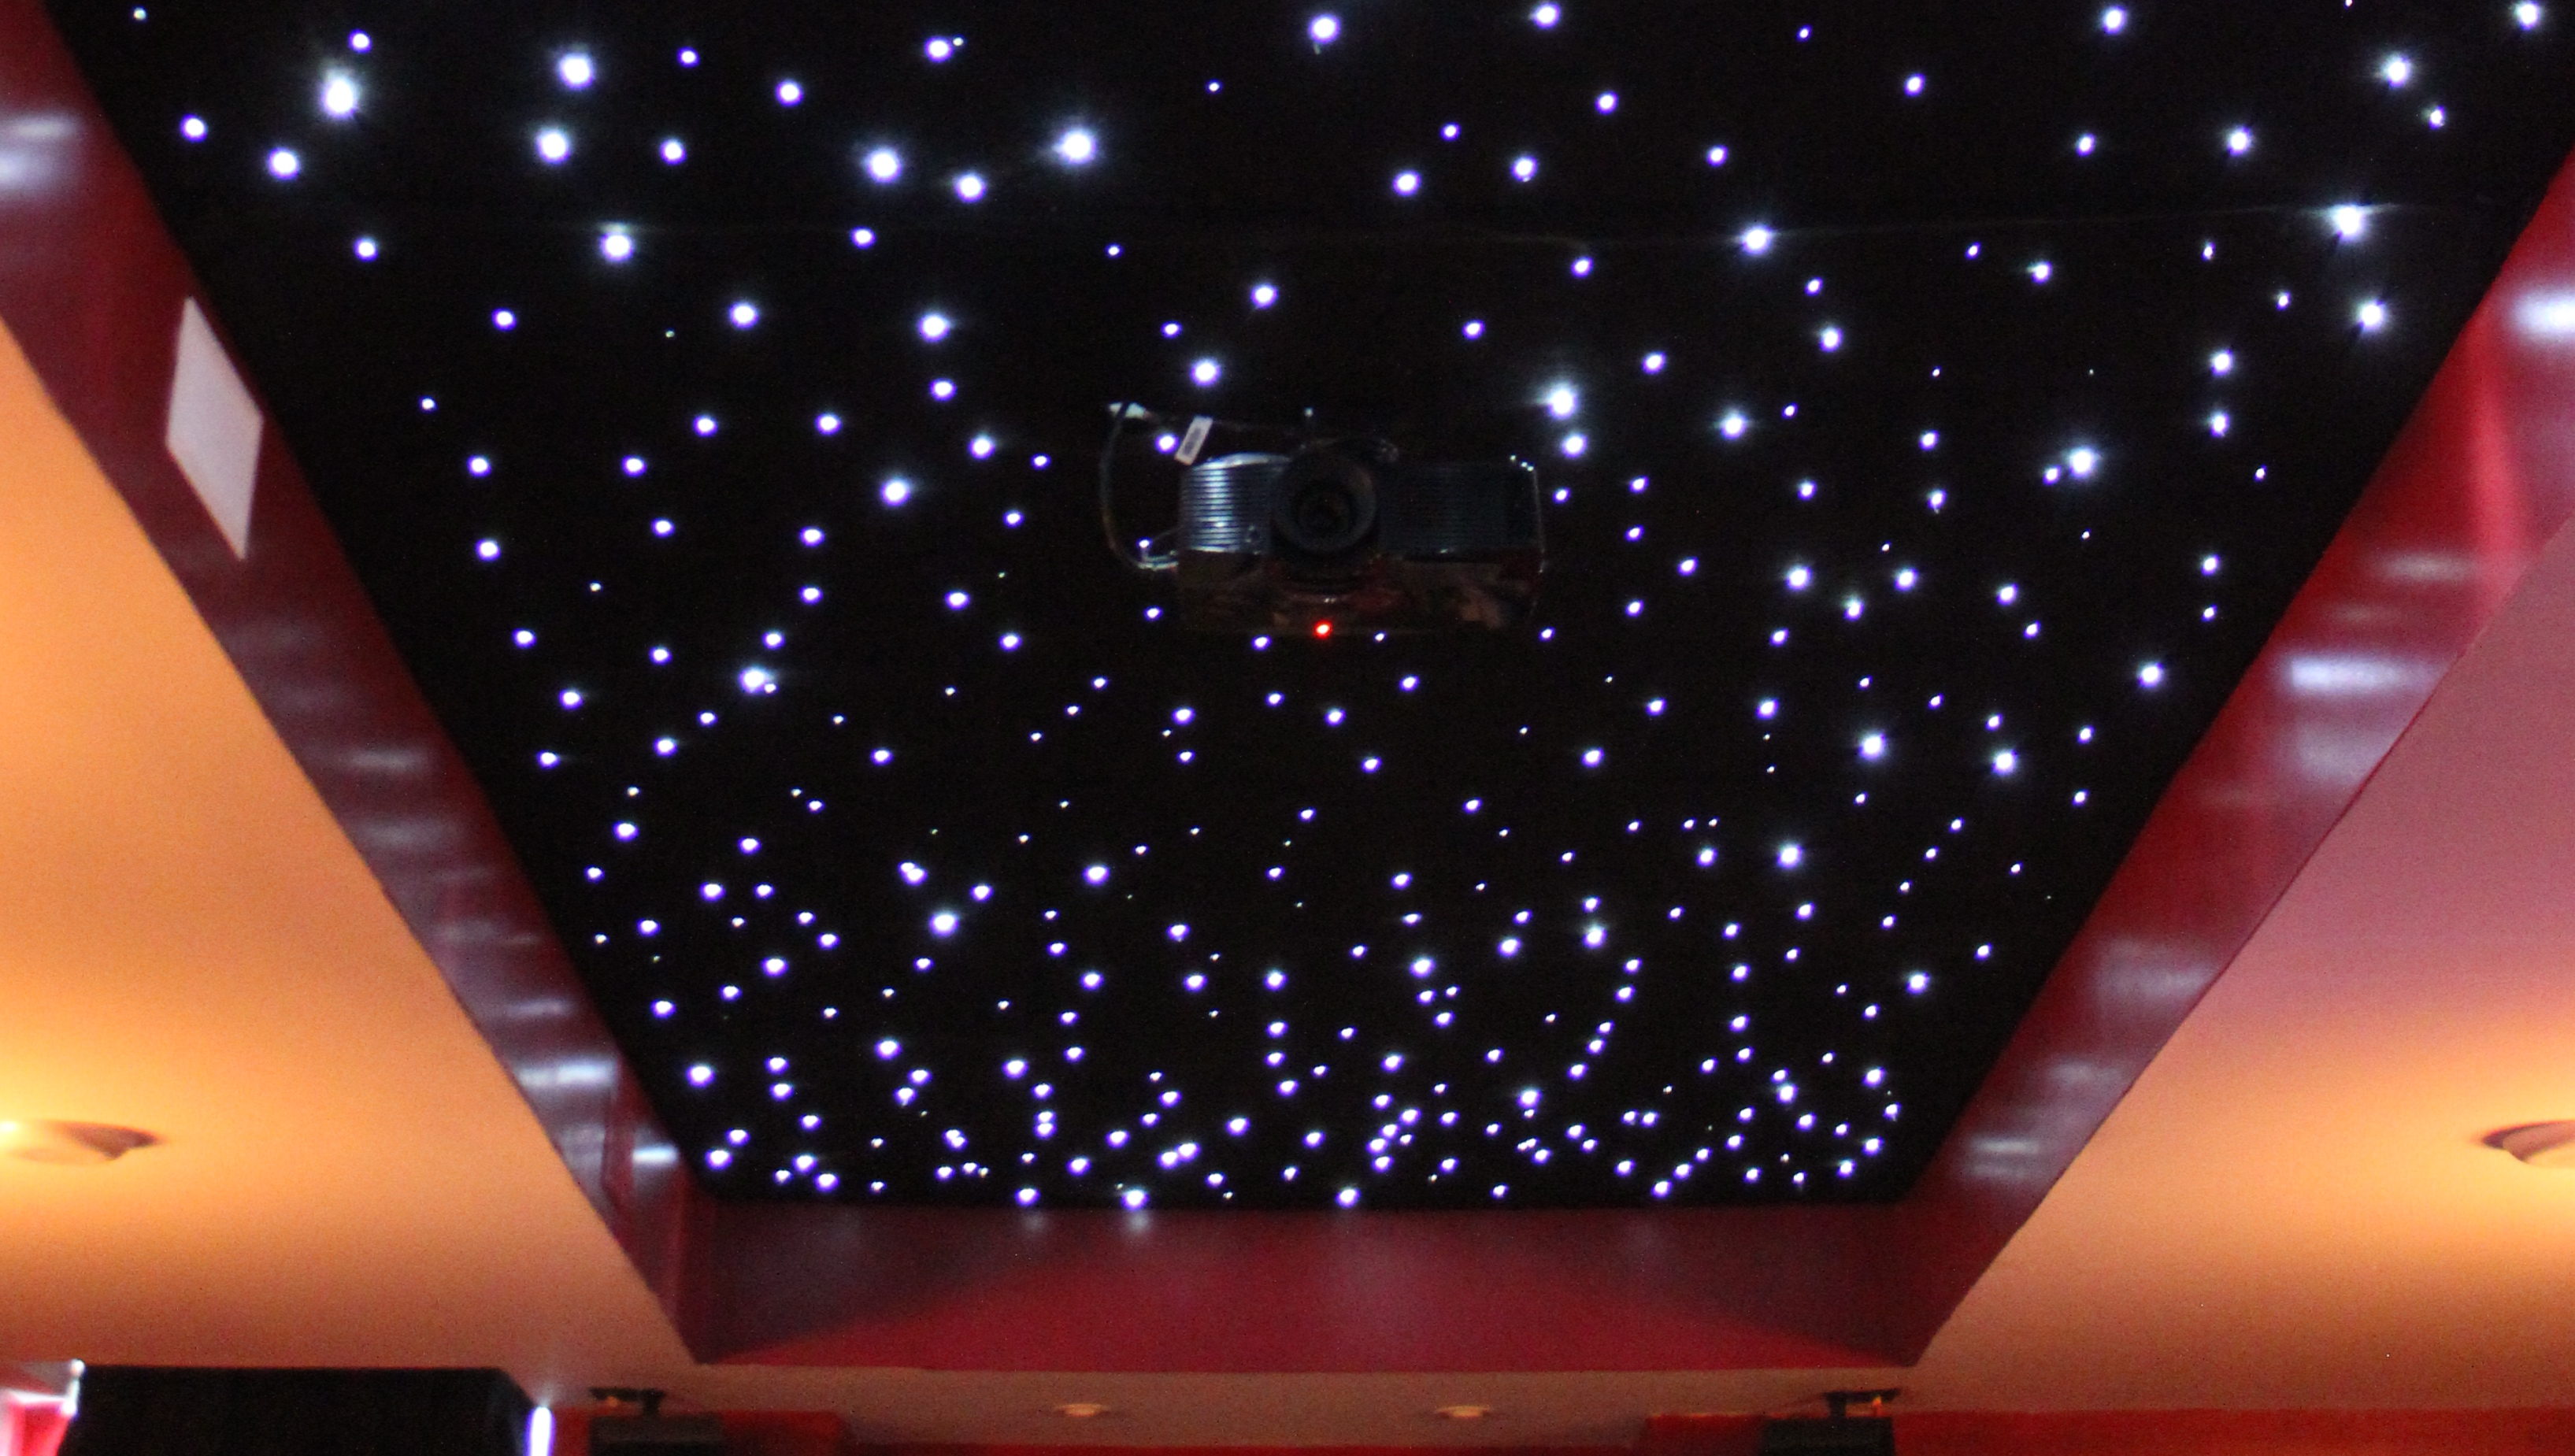 Installing A Fiber Optic Starfield Ceiling Make Circuit Boards And Components Optics Tool Kit